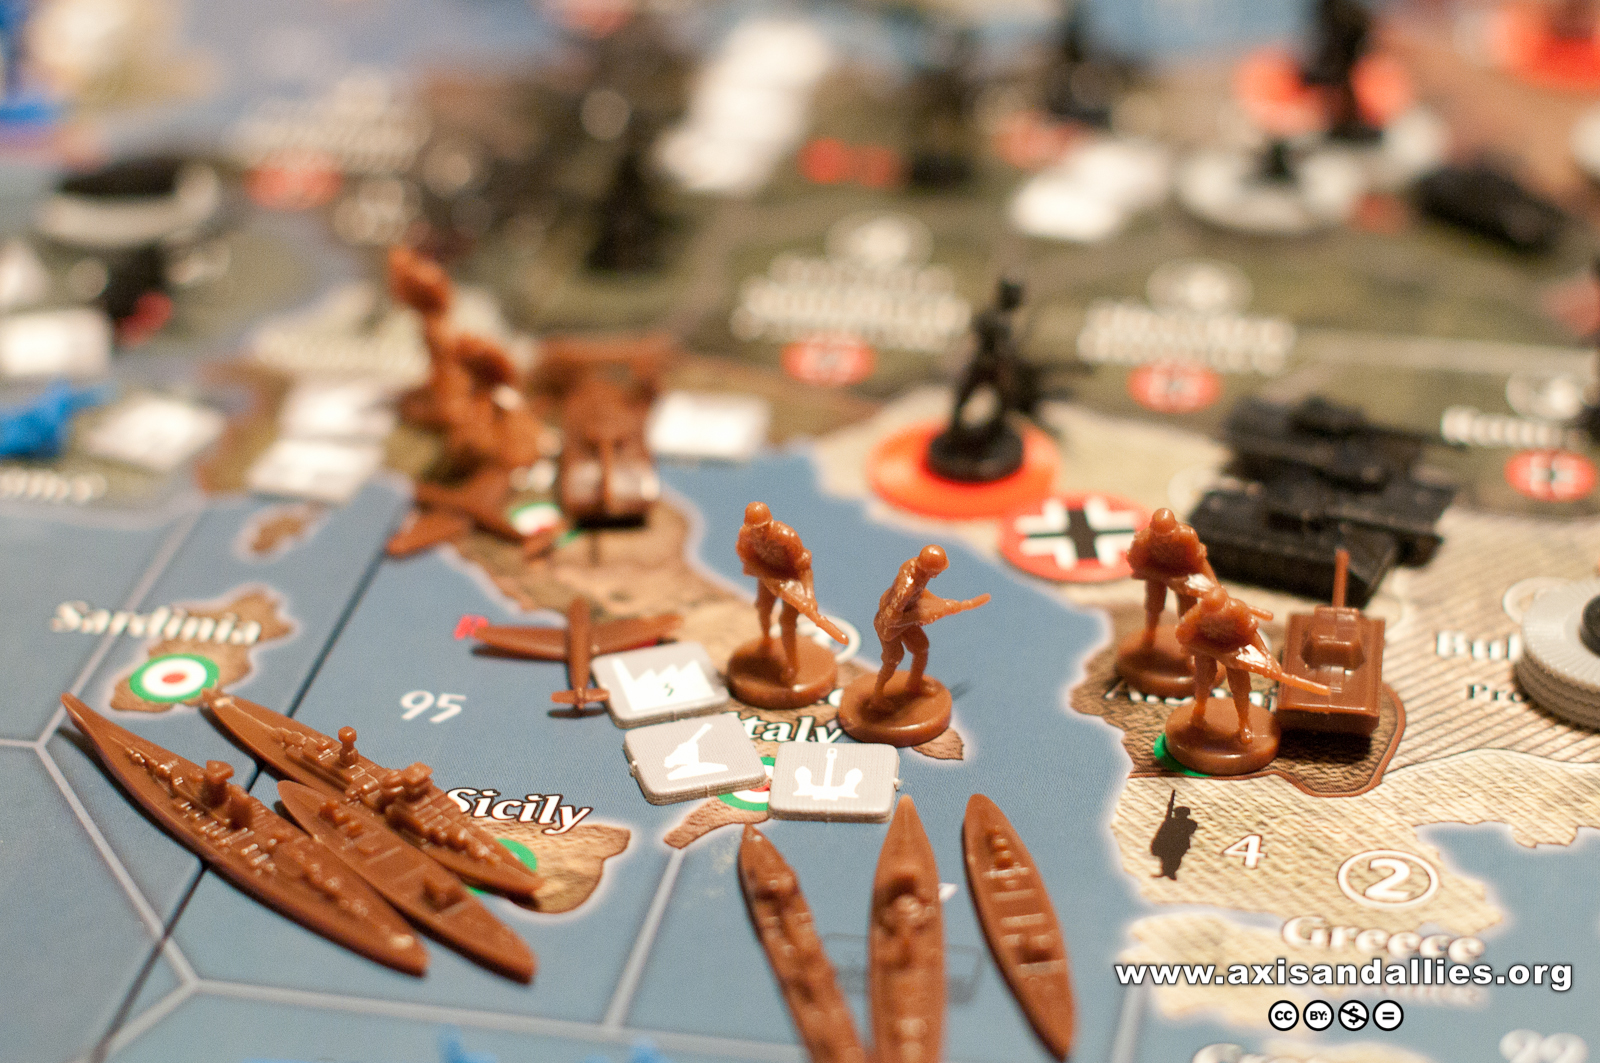 Axis & Allies Europe 1940 in Action 2860